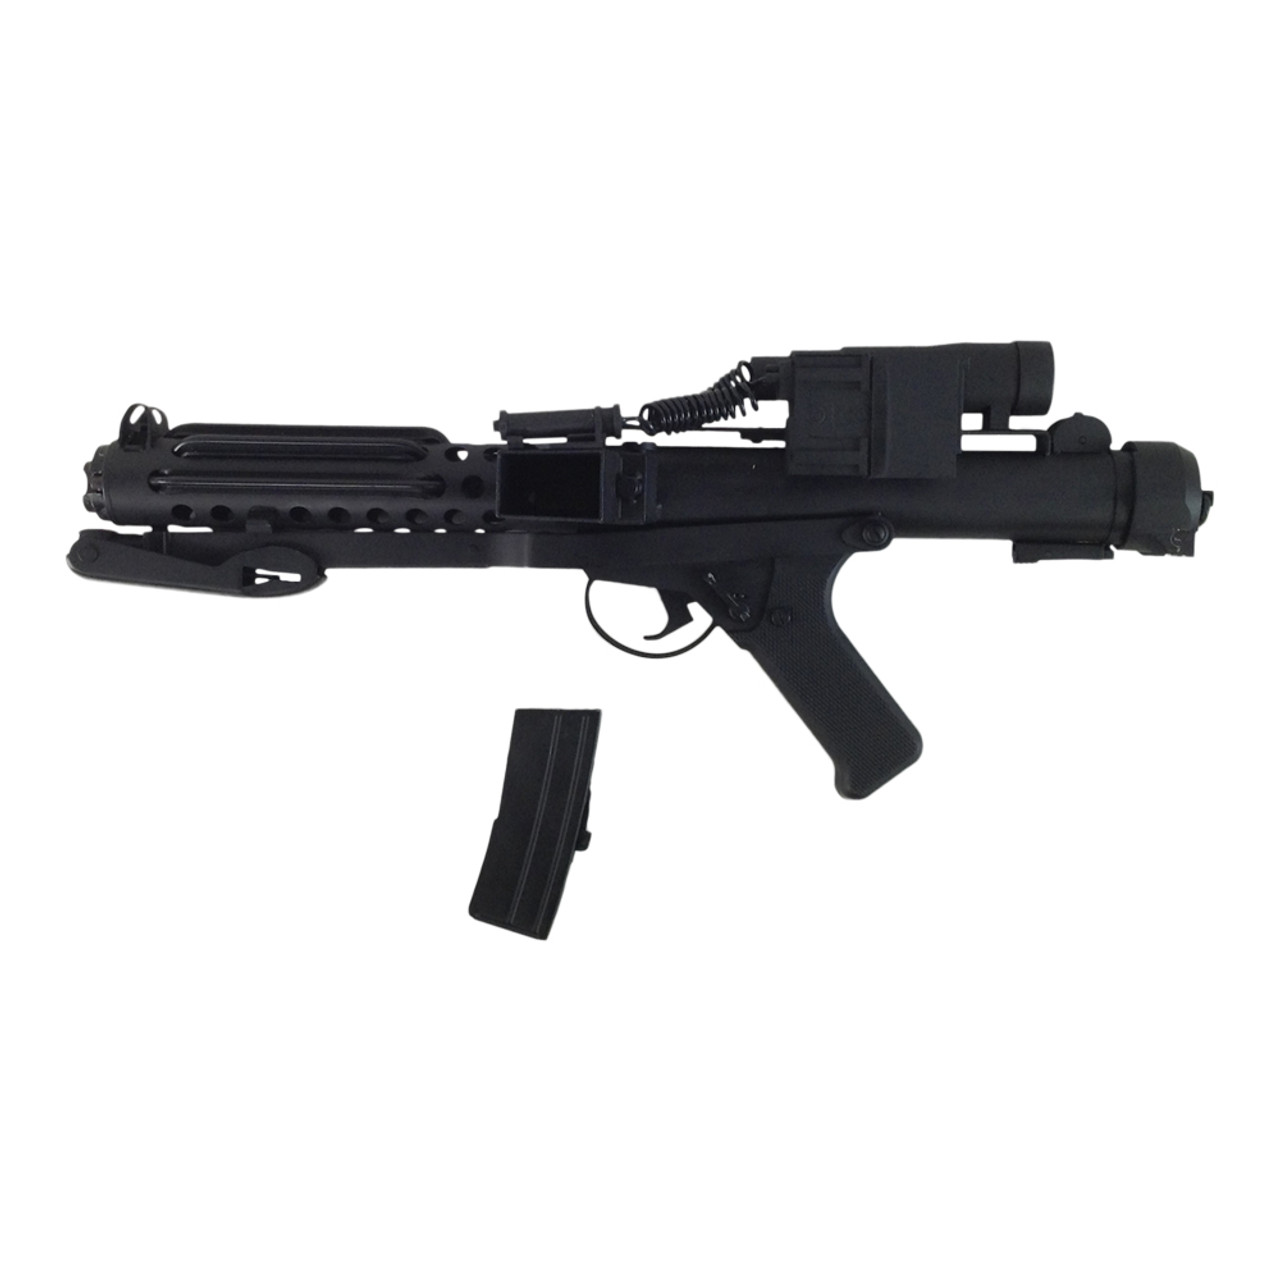 STORM TROOPER STERLING AIRSOFT GUN CERTIFIED